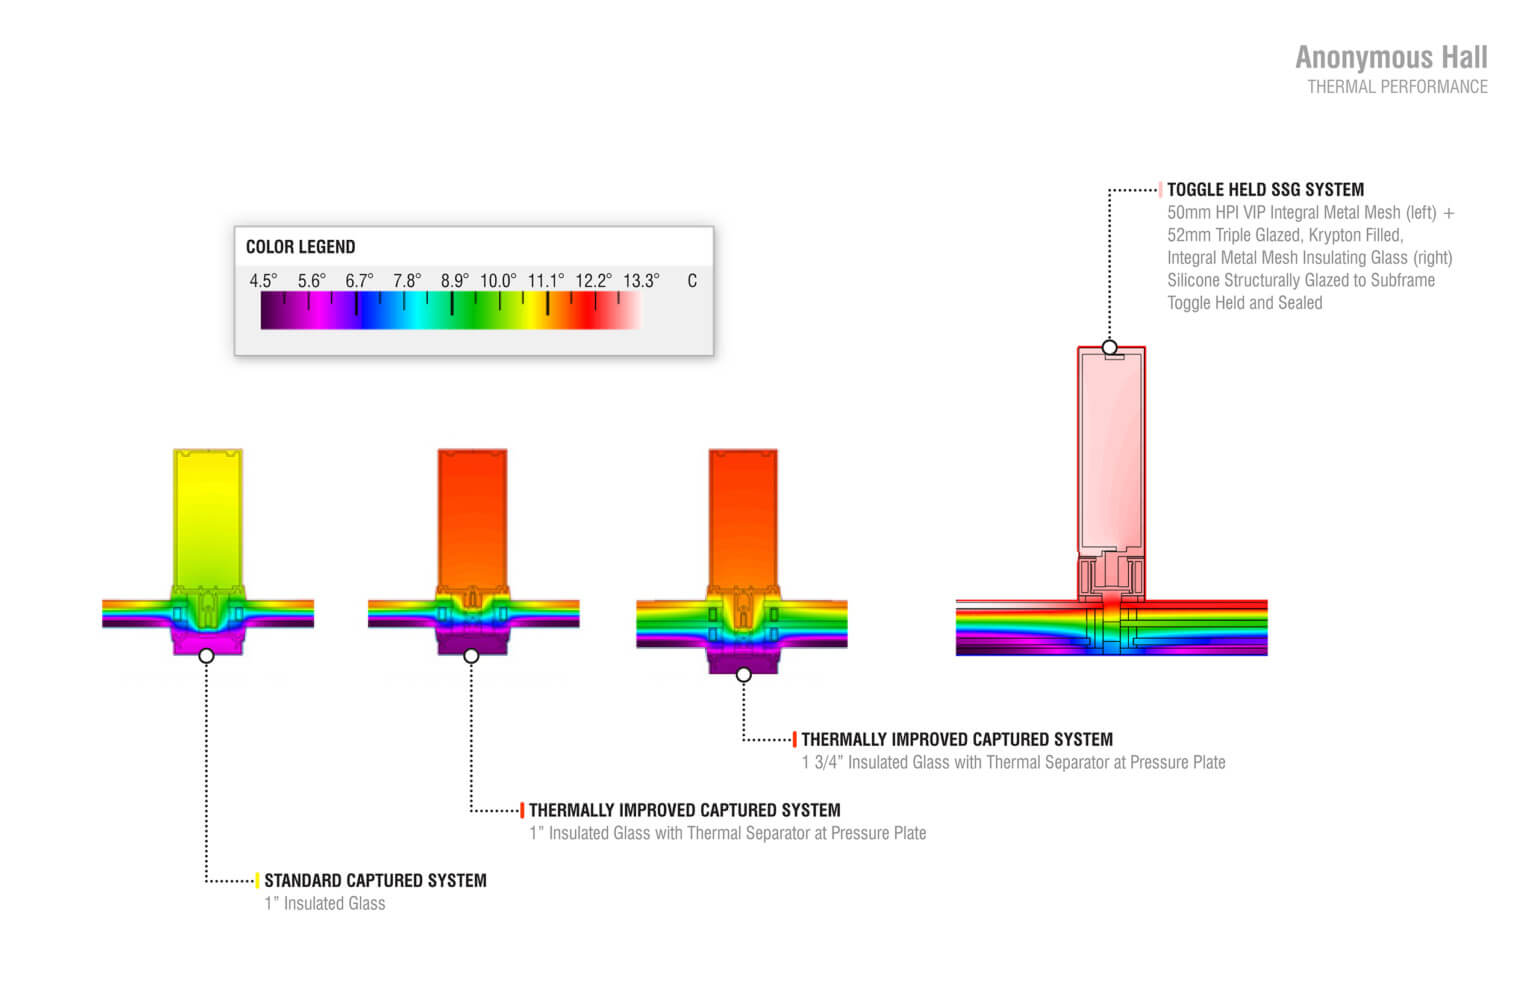 Diagram of thermal performance for the toggle held vacuum insulated glass facade system at Anonymous Hall (Courtesy of Leers Weinzapfel Associates)